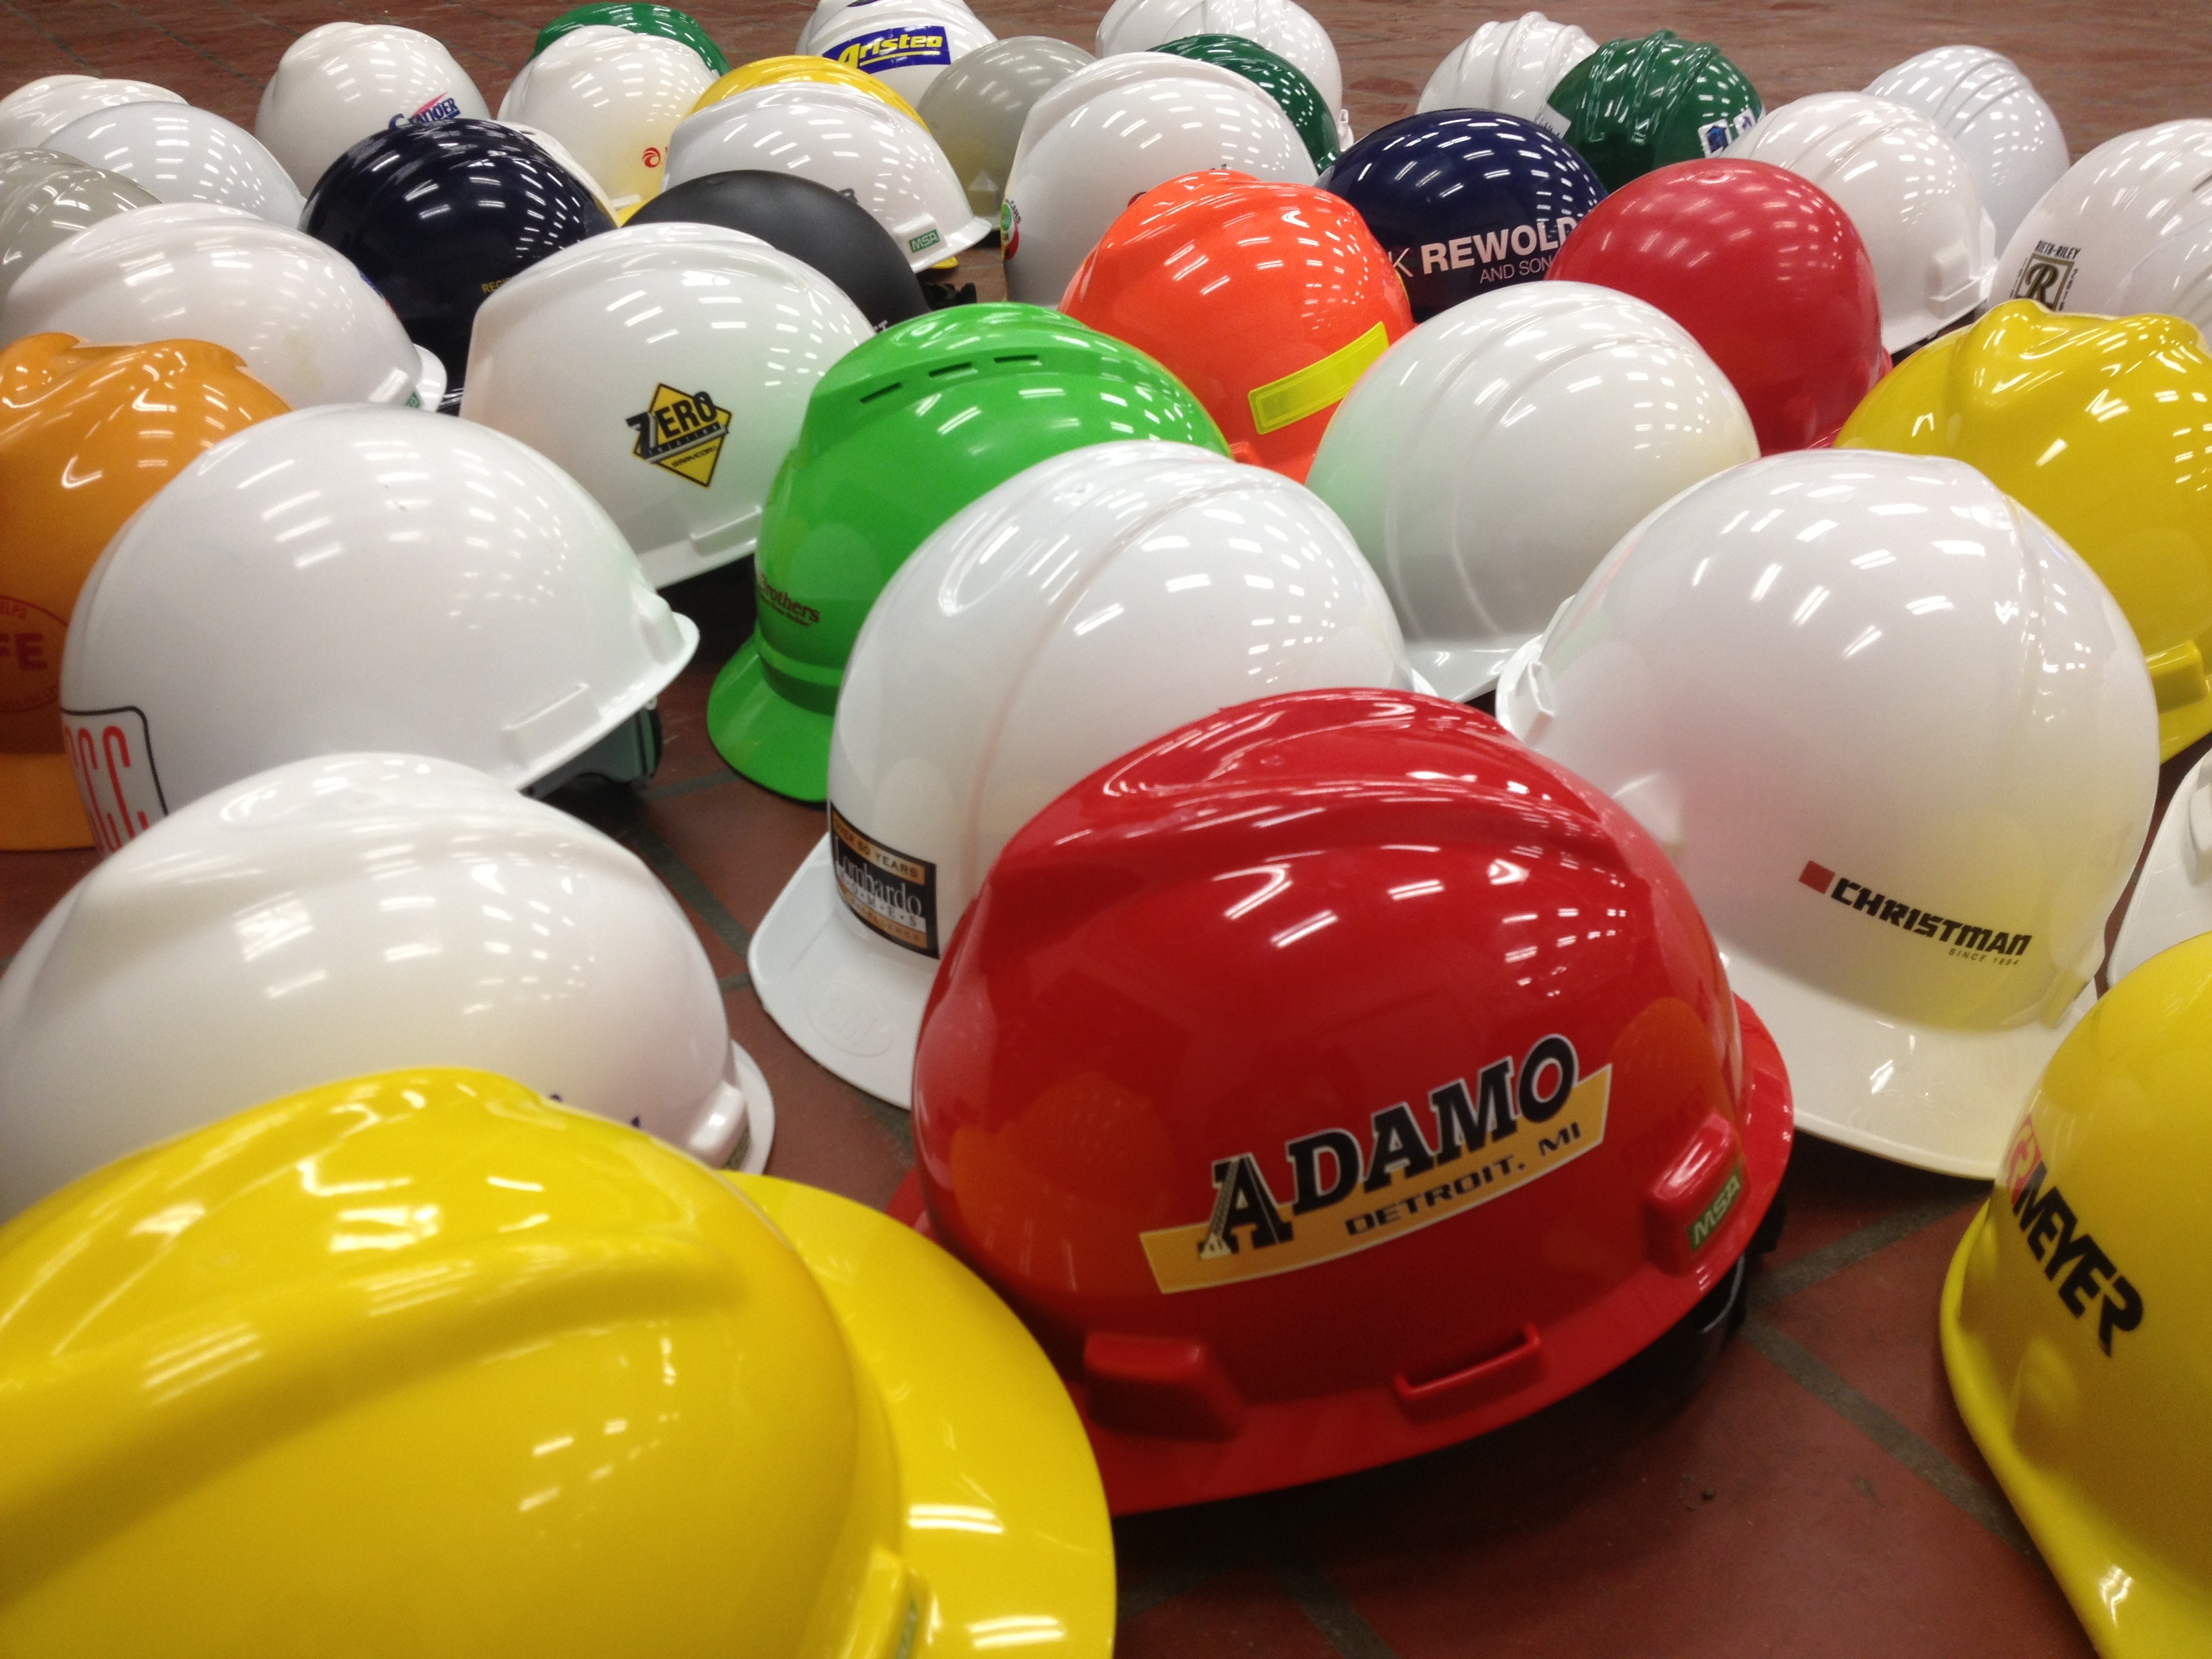 Photo showing several hard hats grouped together.